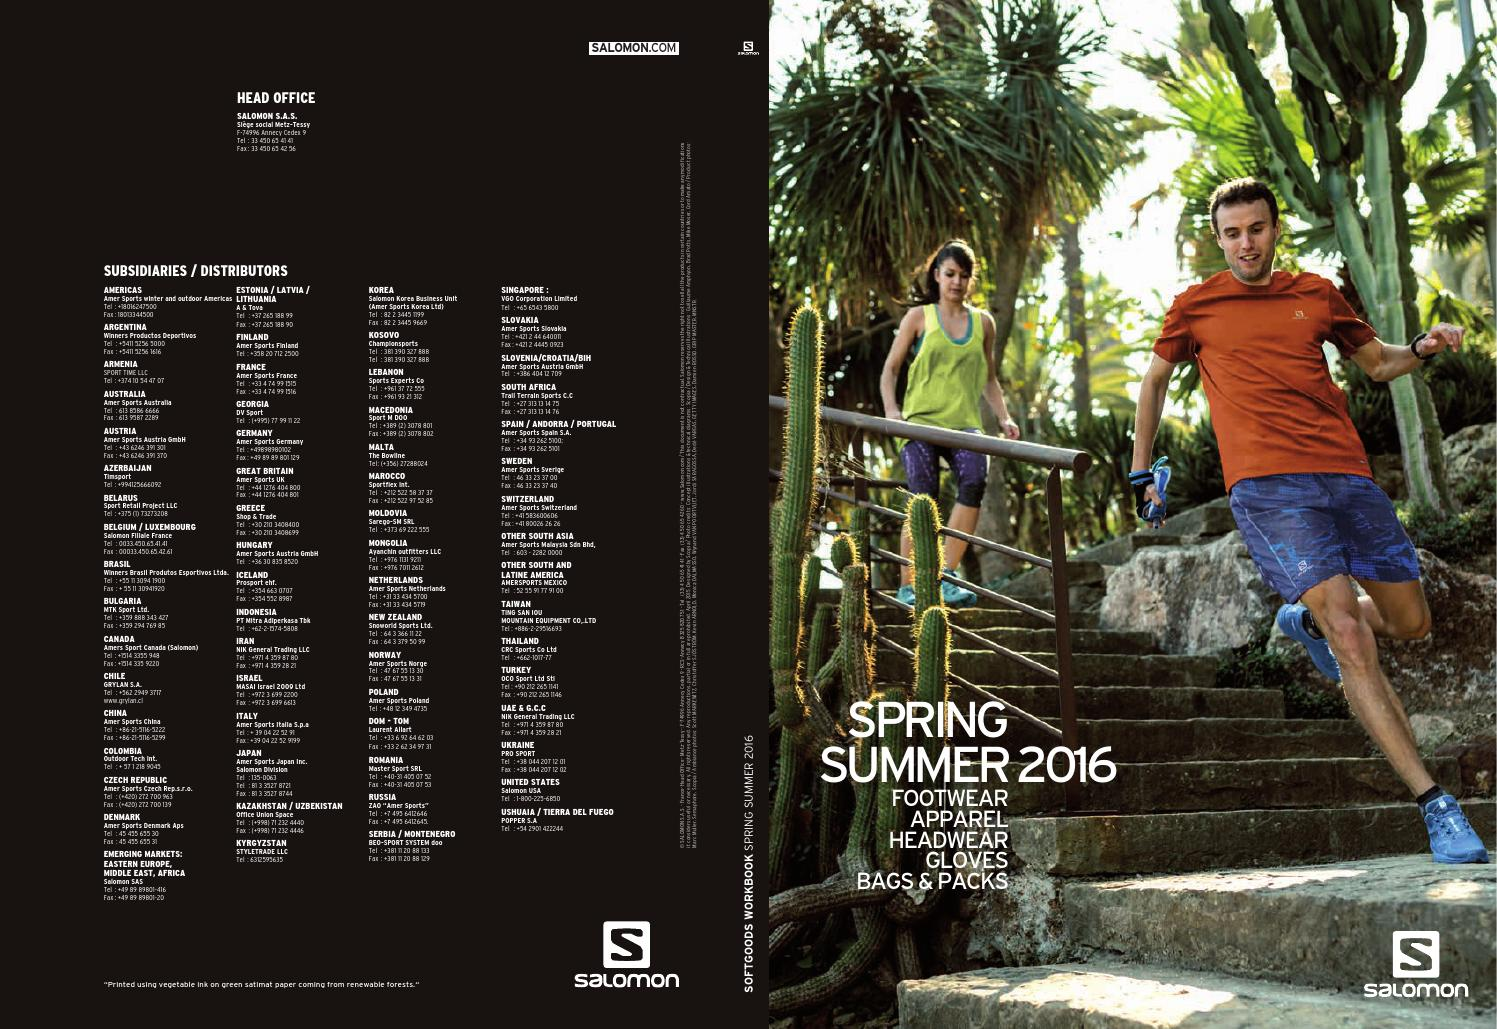 Ss16 wb soft gb 100dpi by Amer Sports Sverige issuu